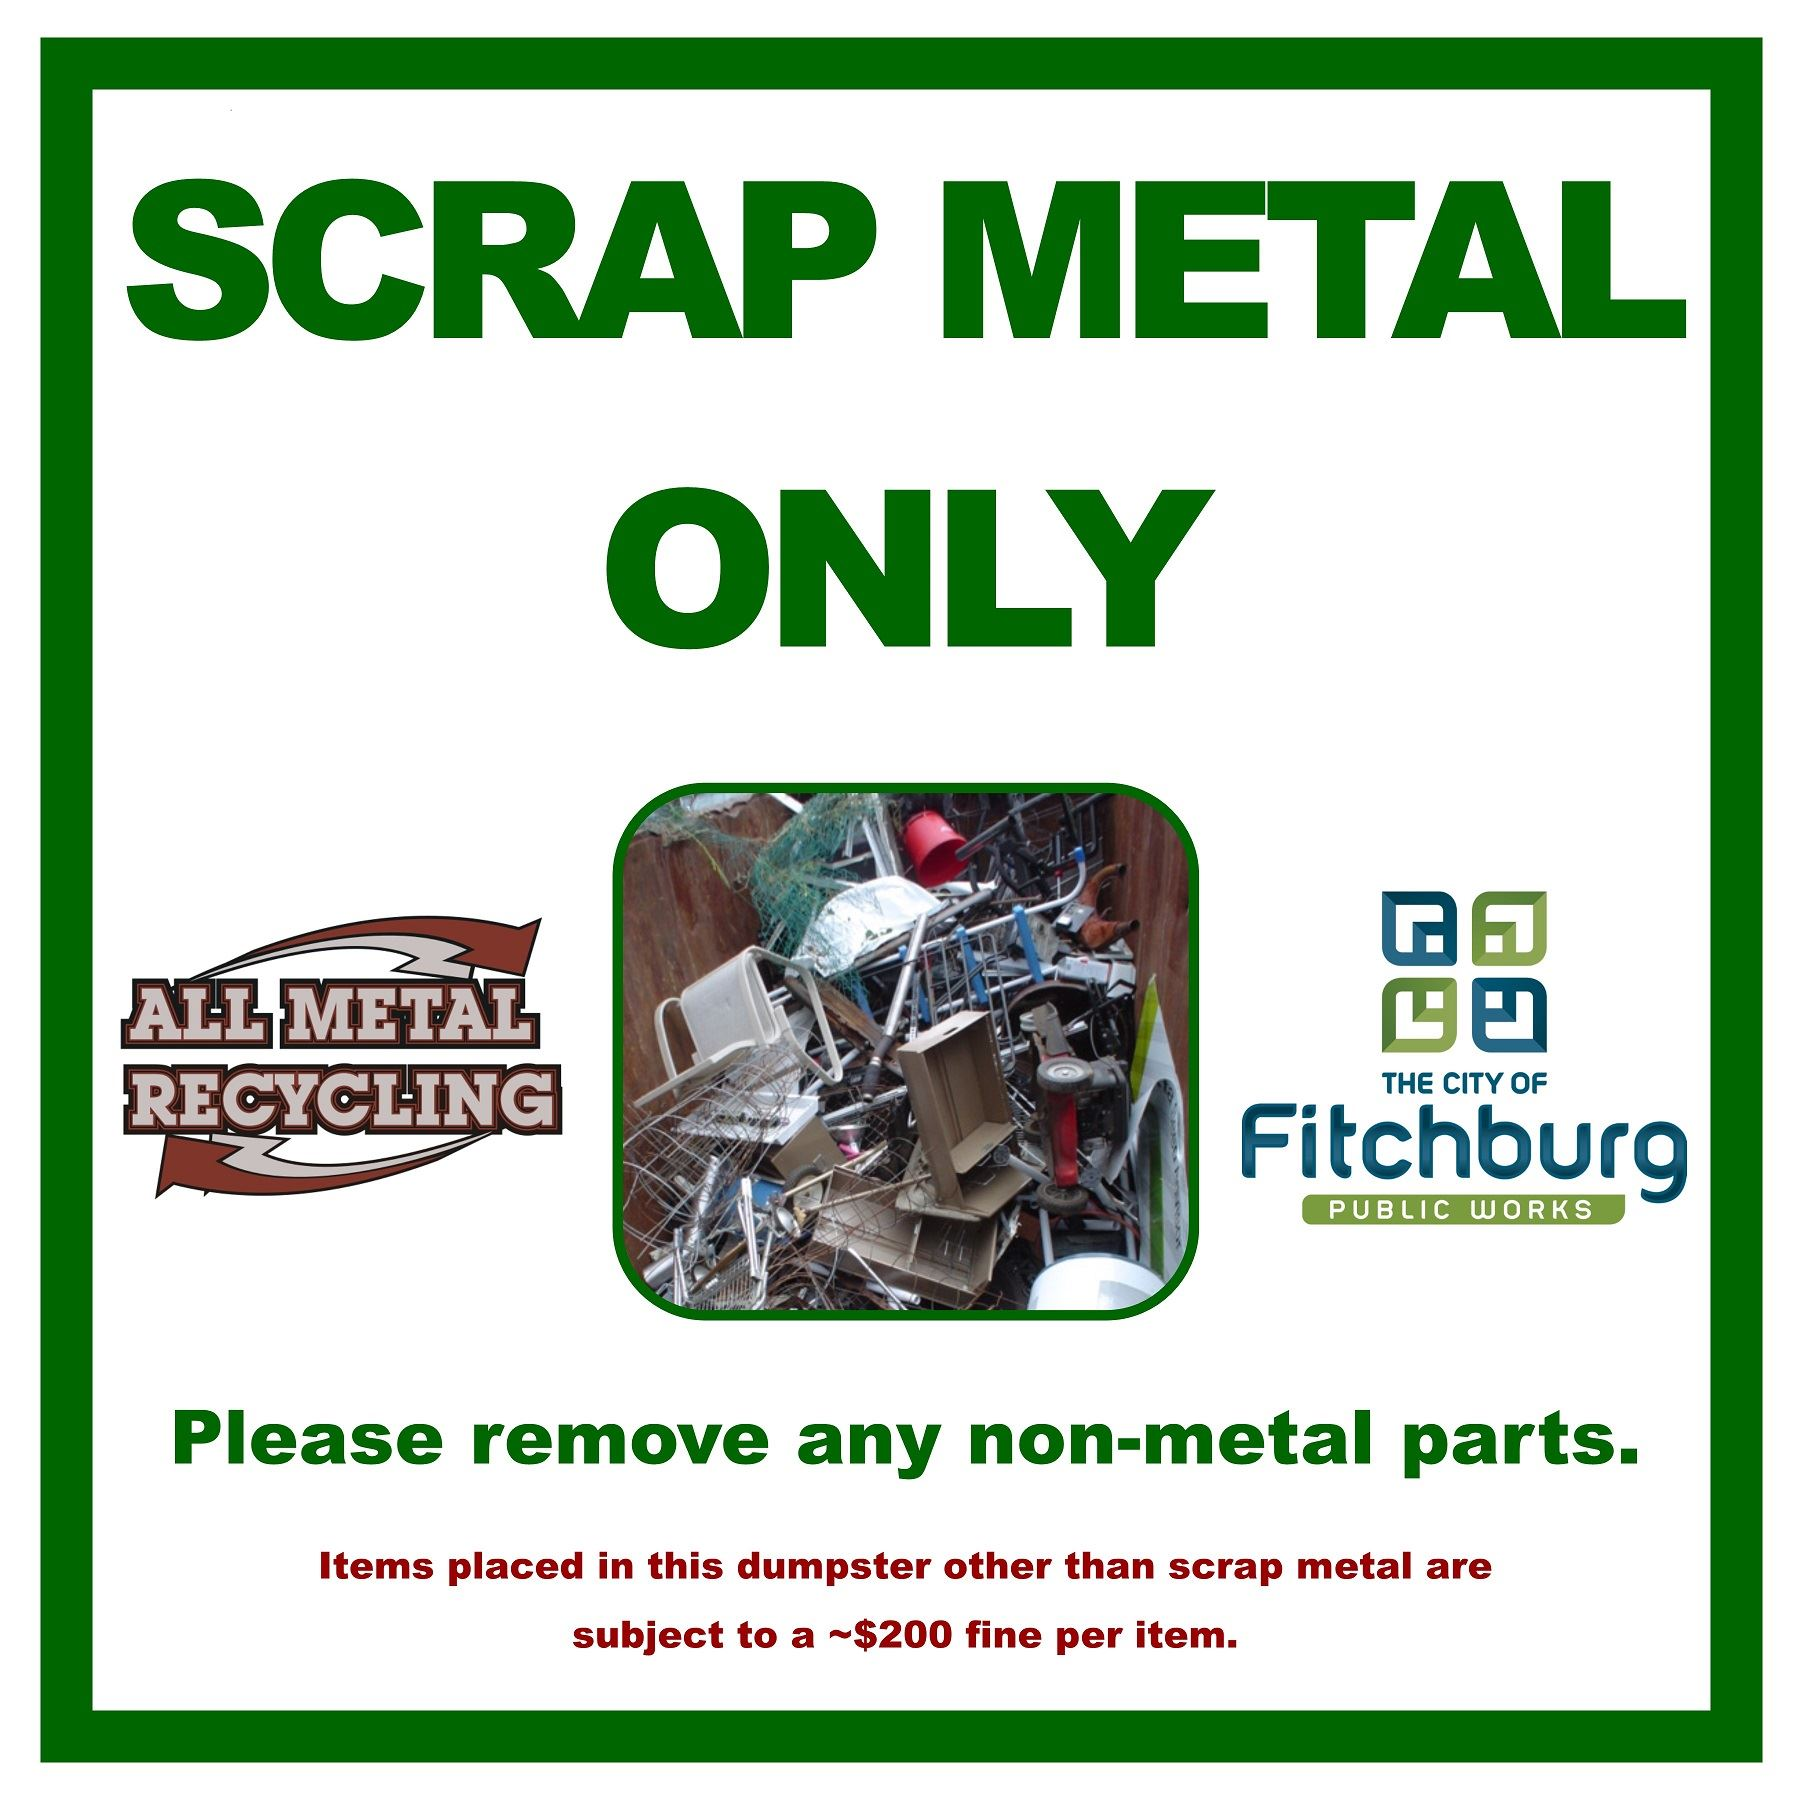 4 Scrap Metal Only Aluminum Sign 2x2 2014-12-01